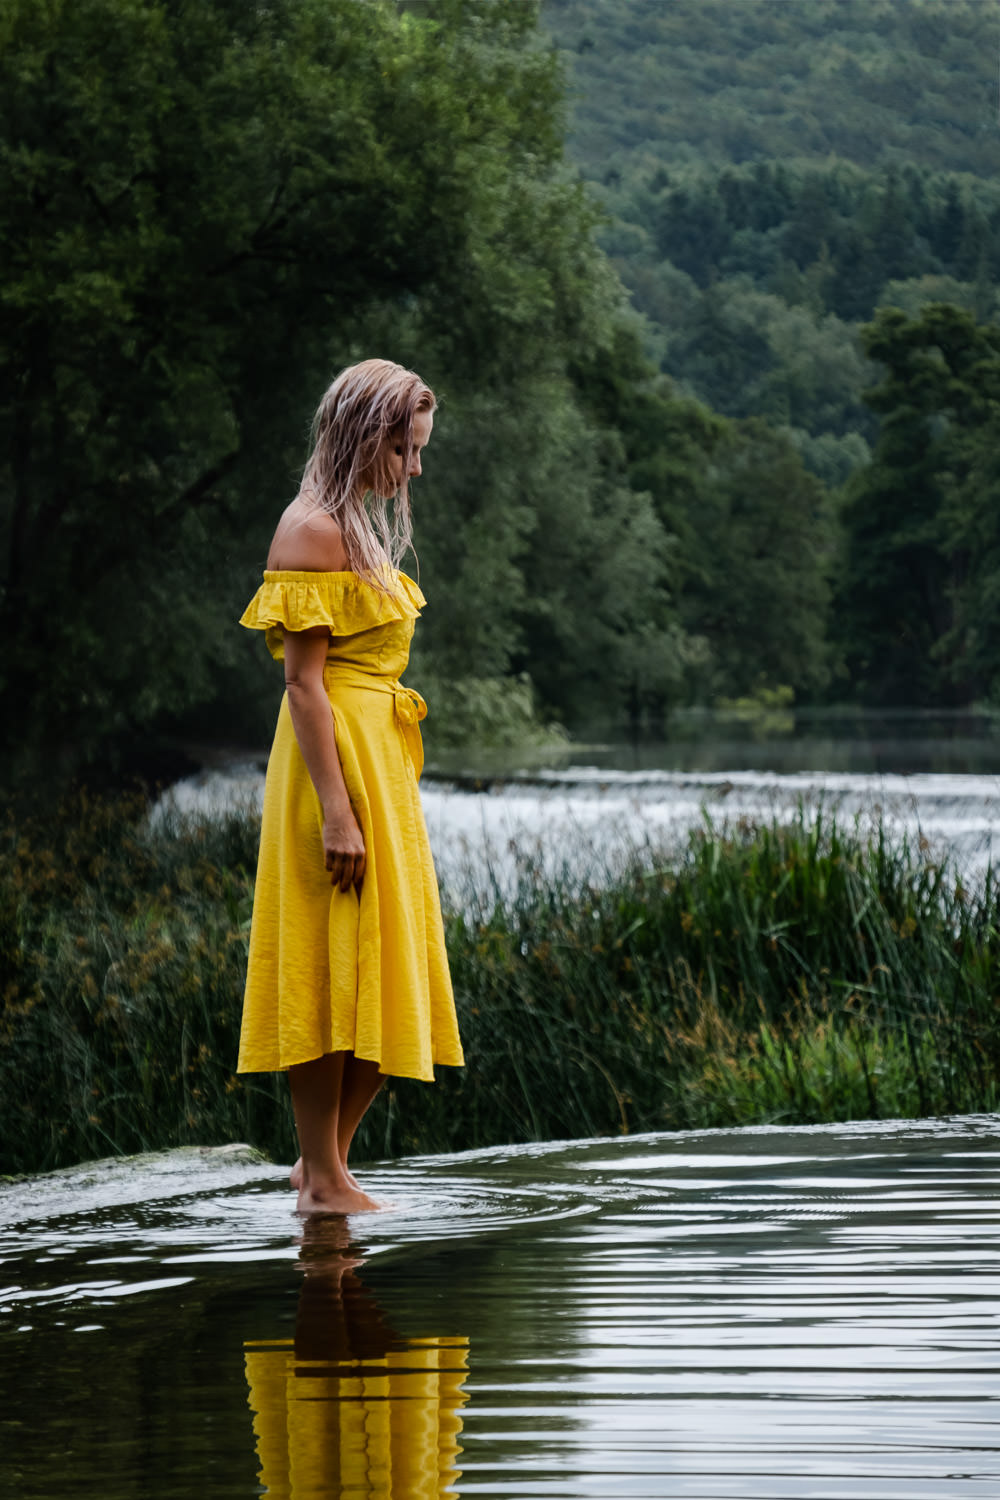 Women stood on the edge of the weir looking down to the rippling water, wearing a mustard yellow dress